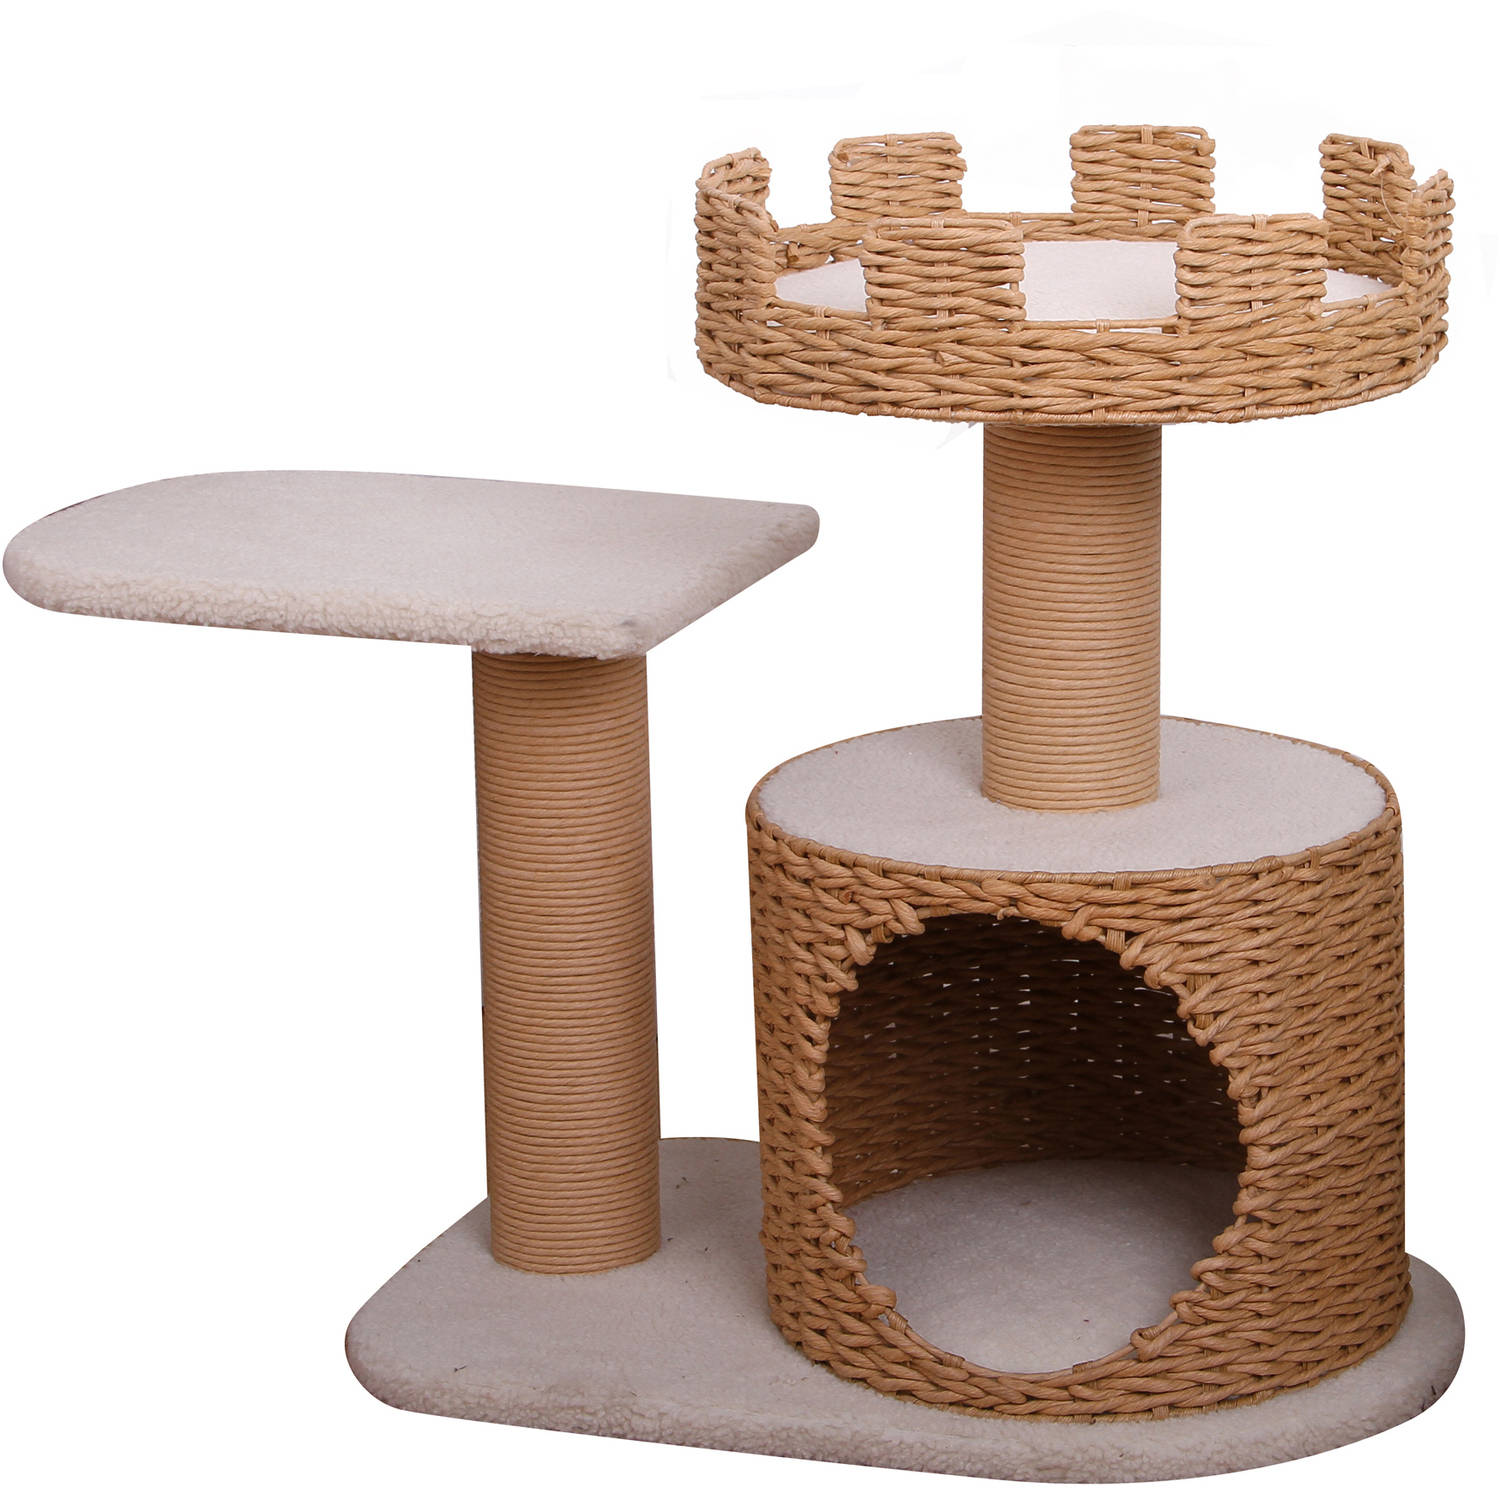 Petpals Group Crown Paper Rope Condo with 2 Perch Levels